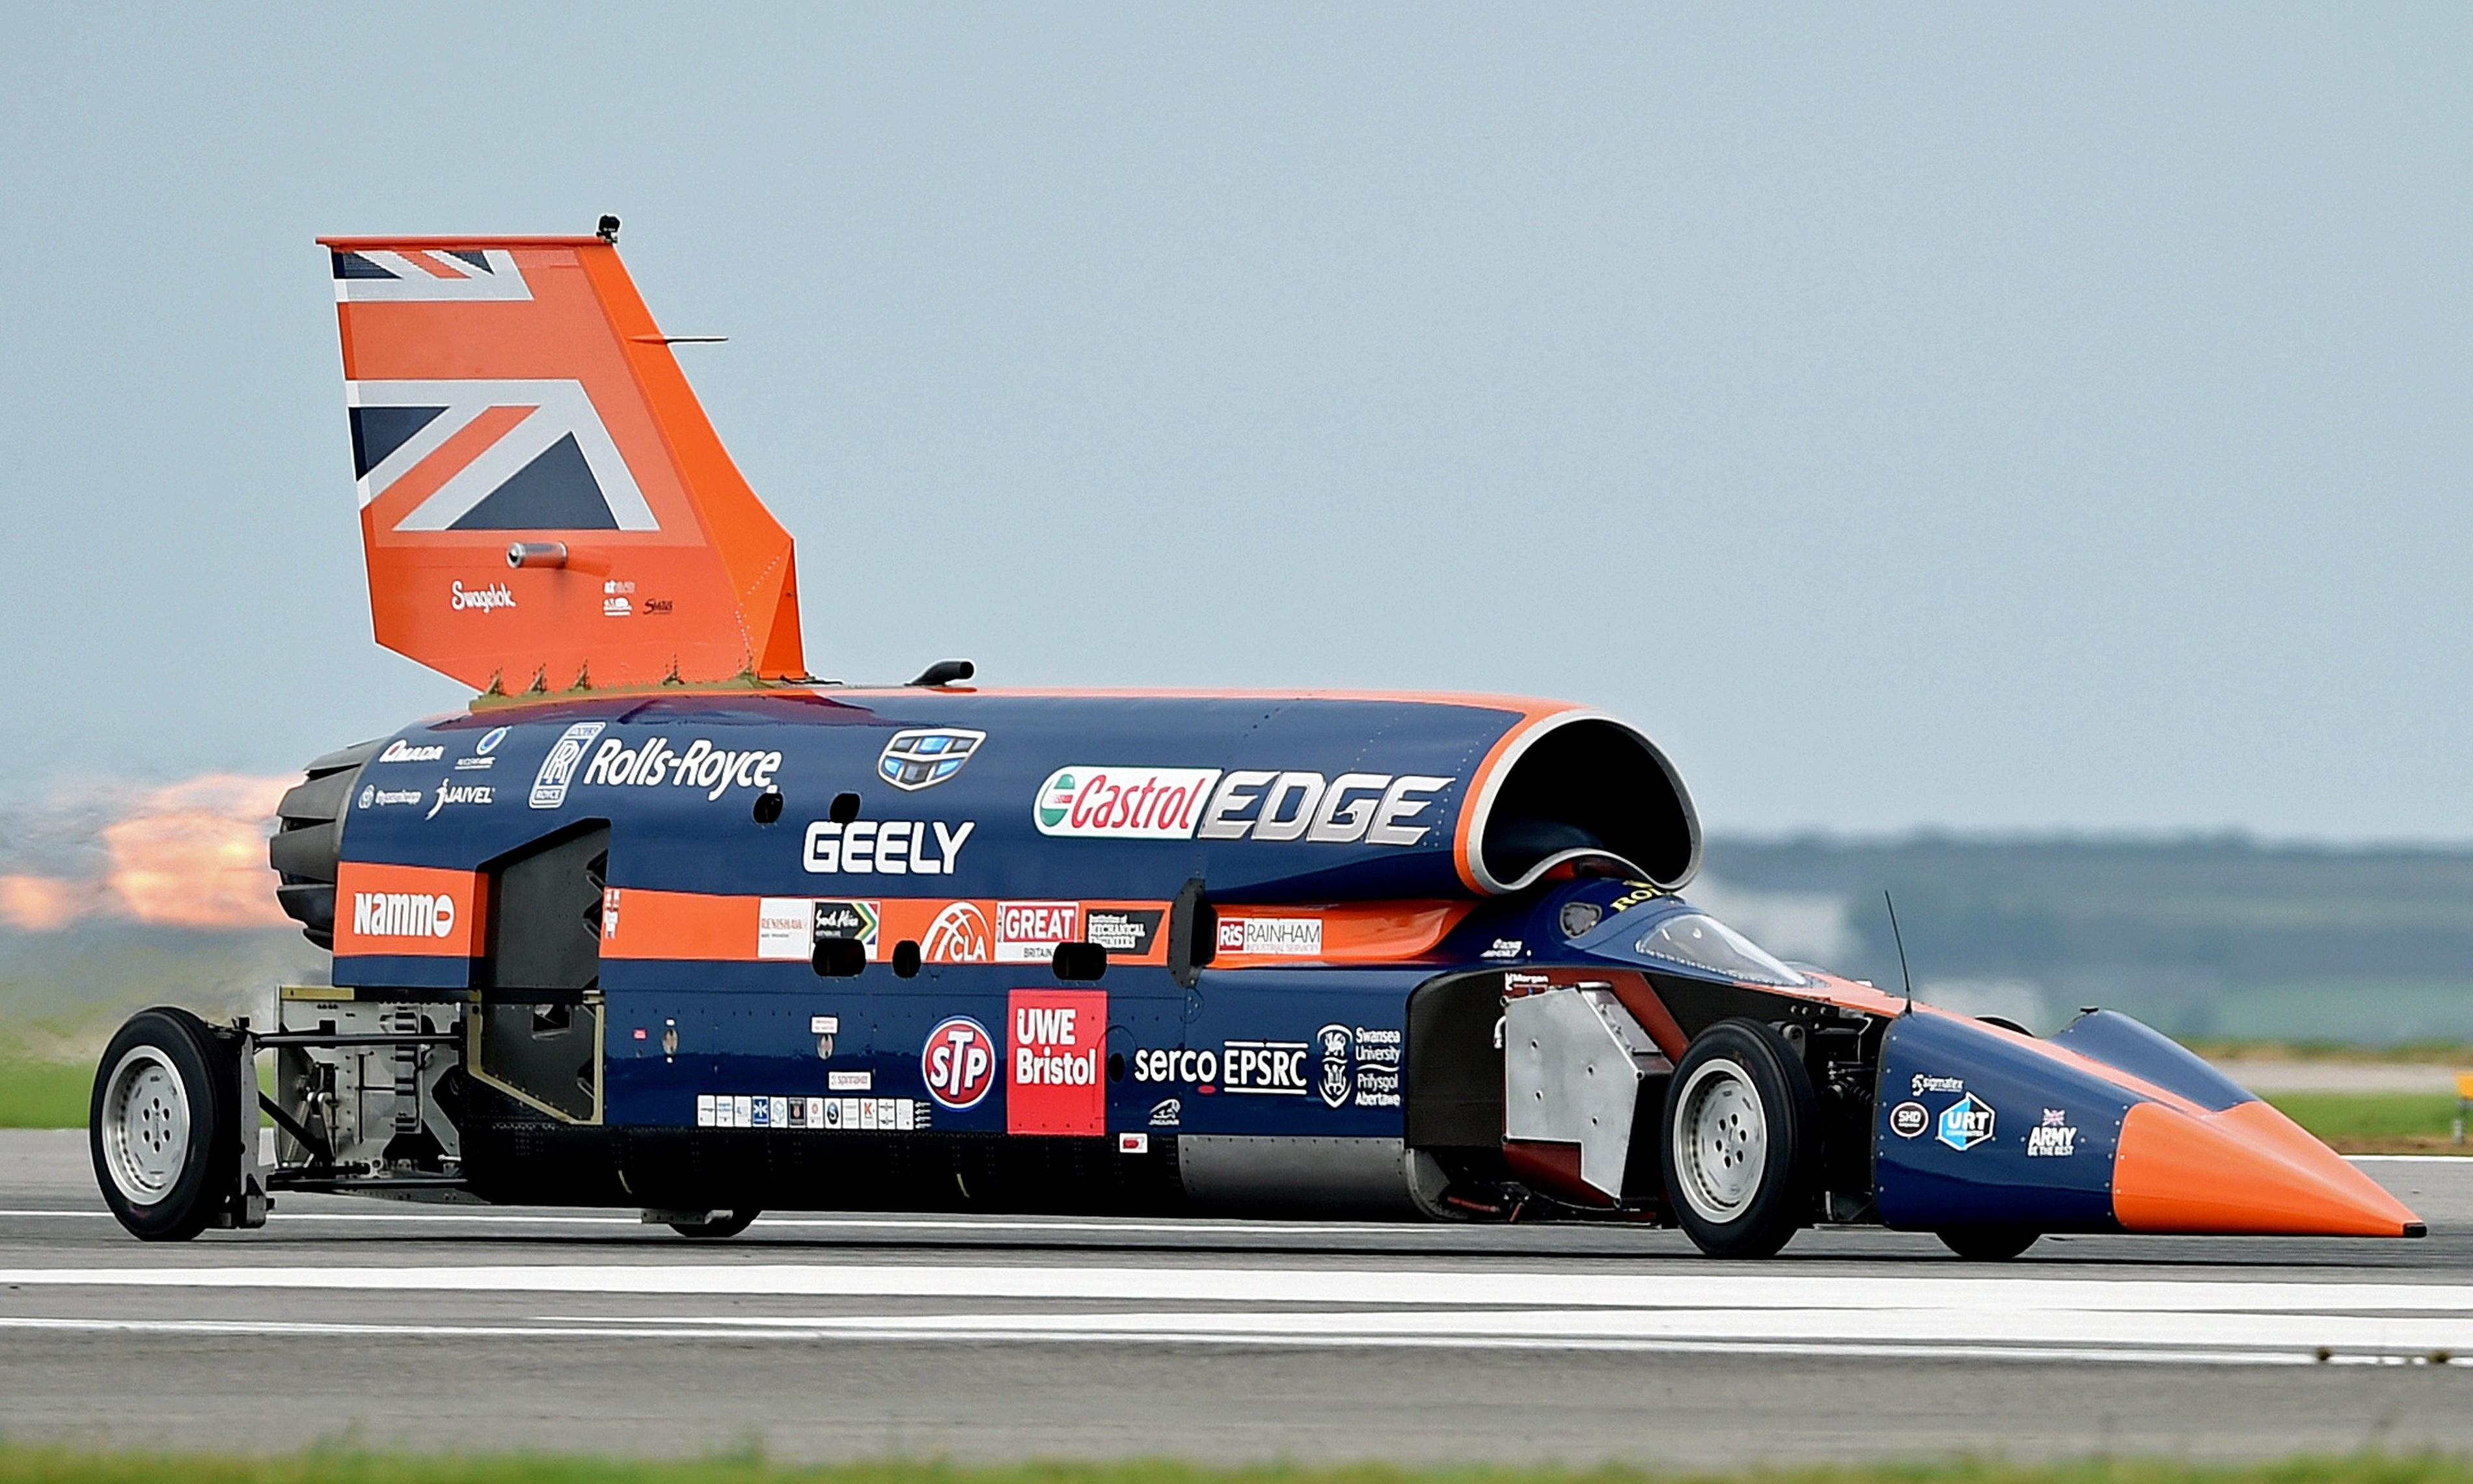 Bloodhound's 1,000mph car project given financial boost